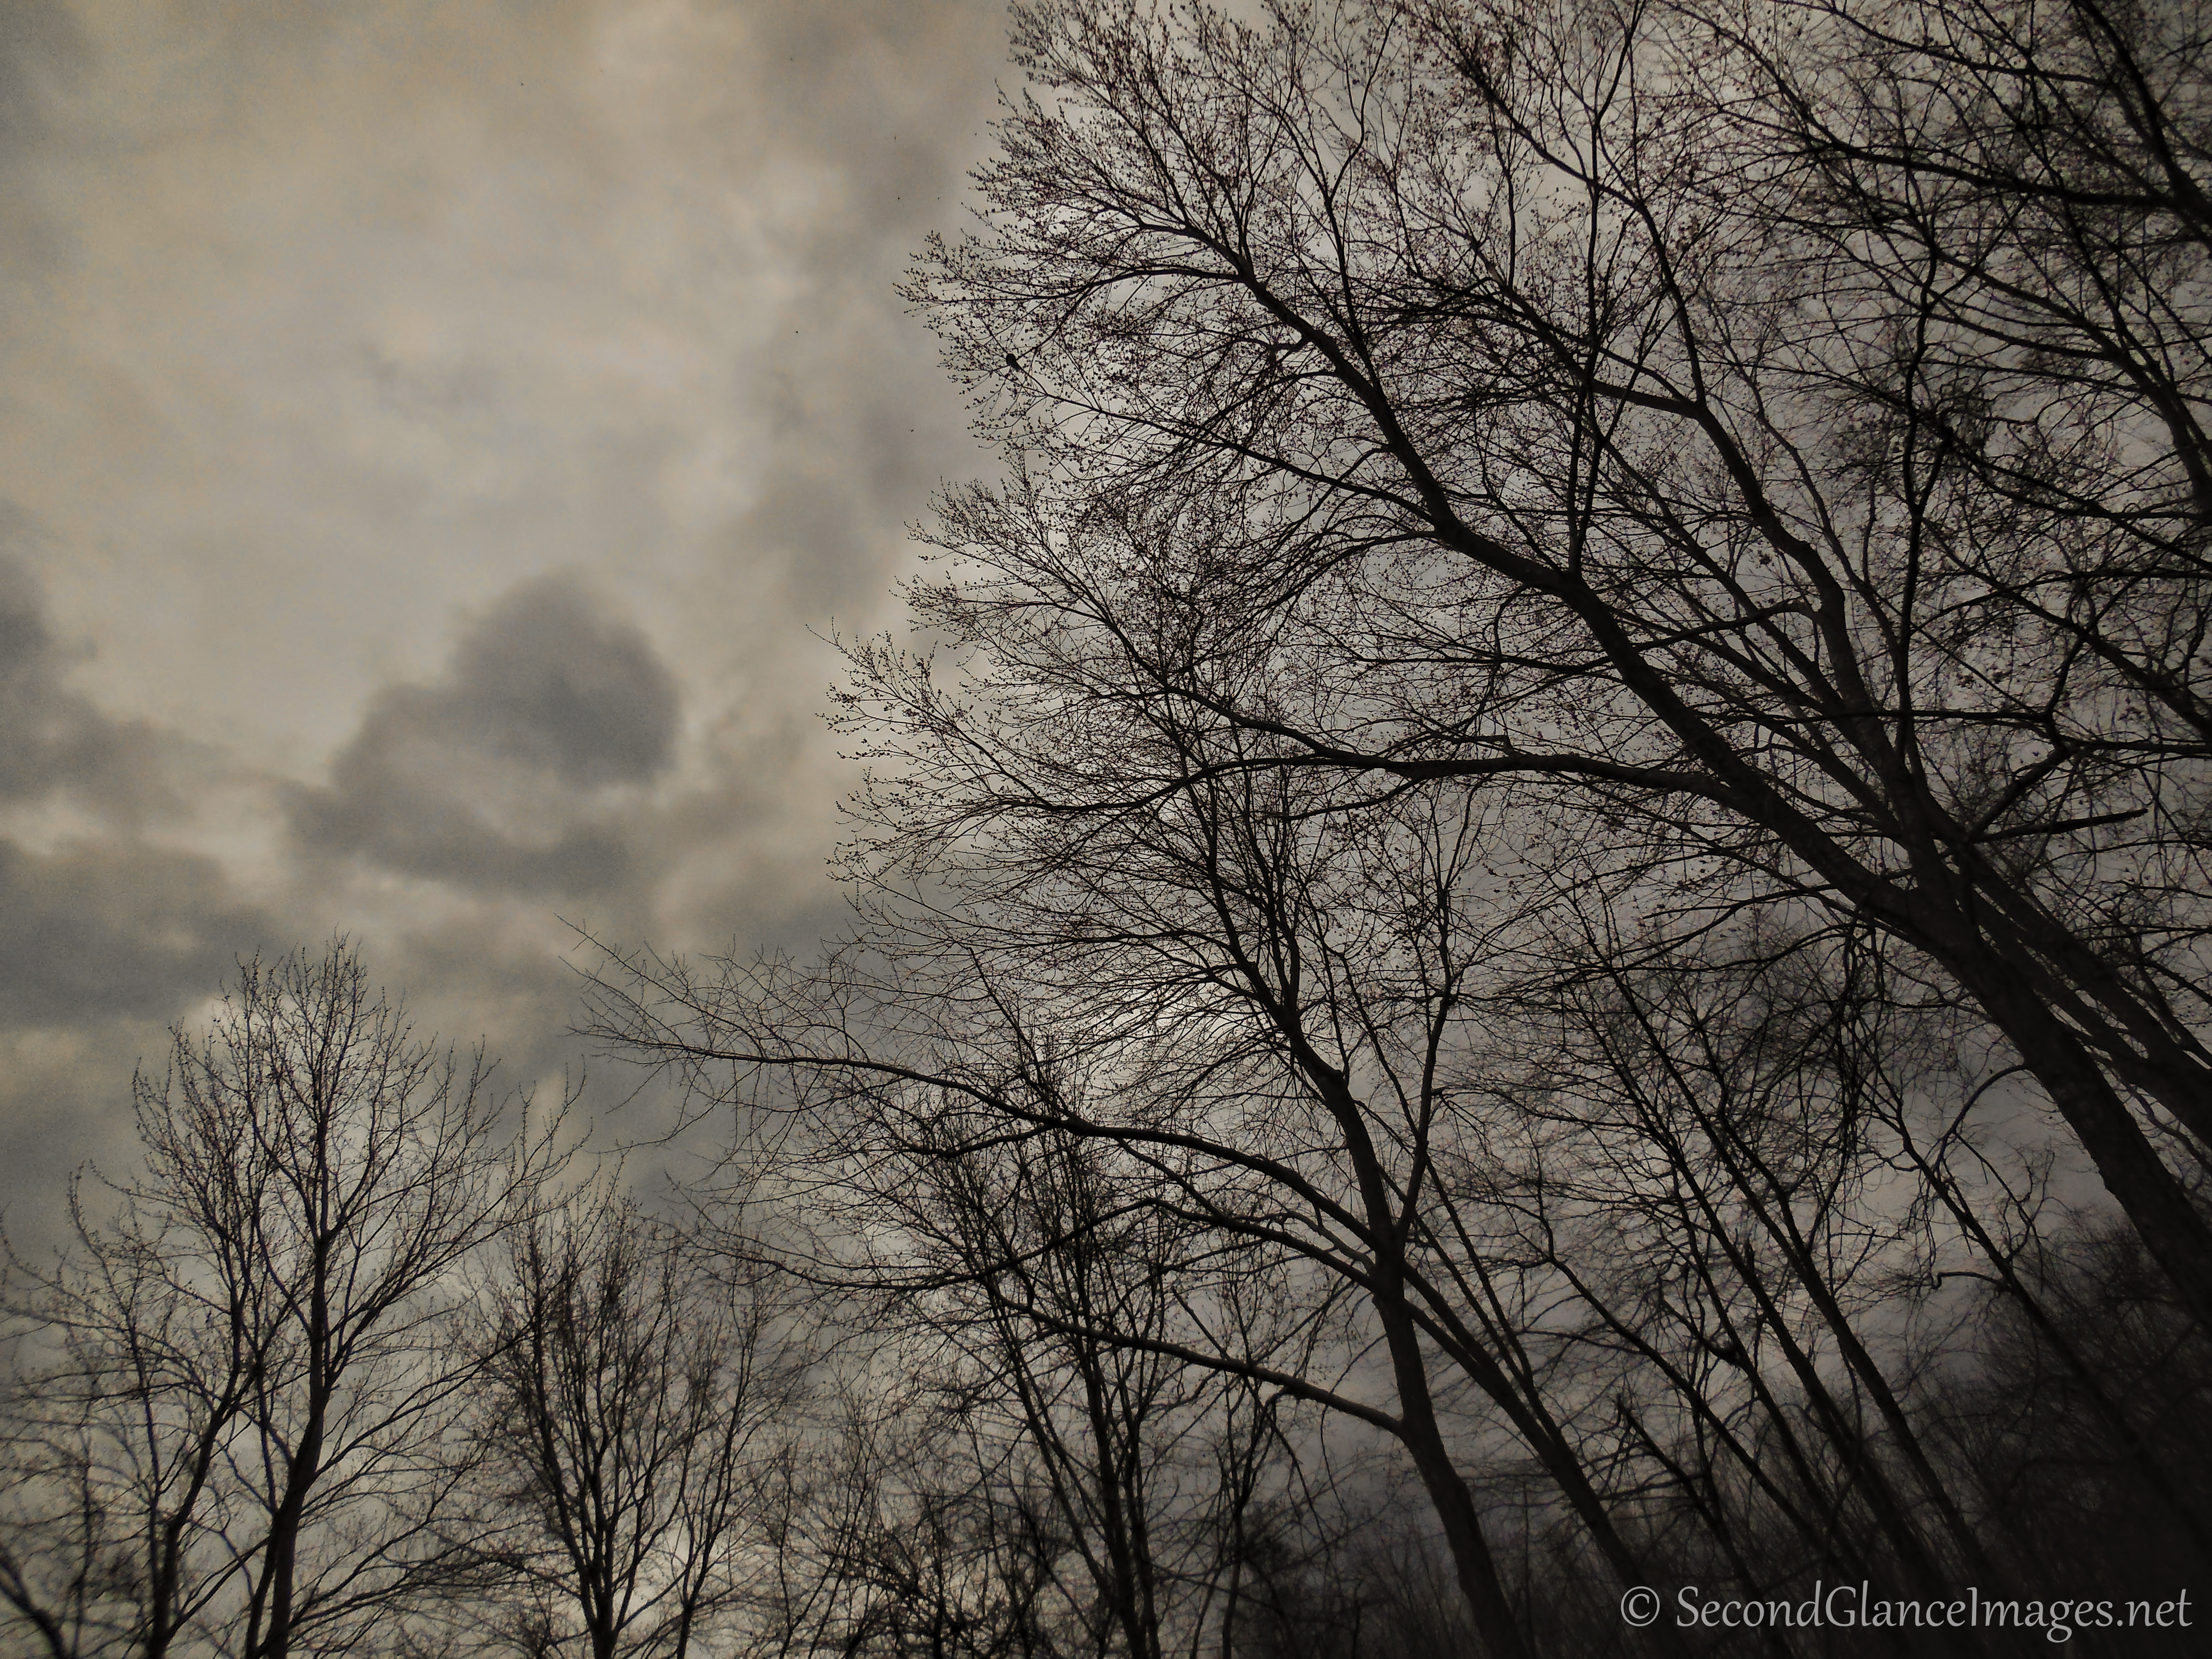 Gathering storm clouds ...